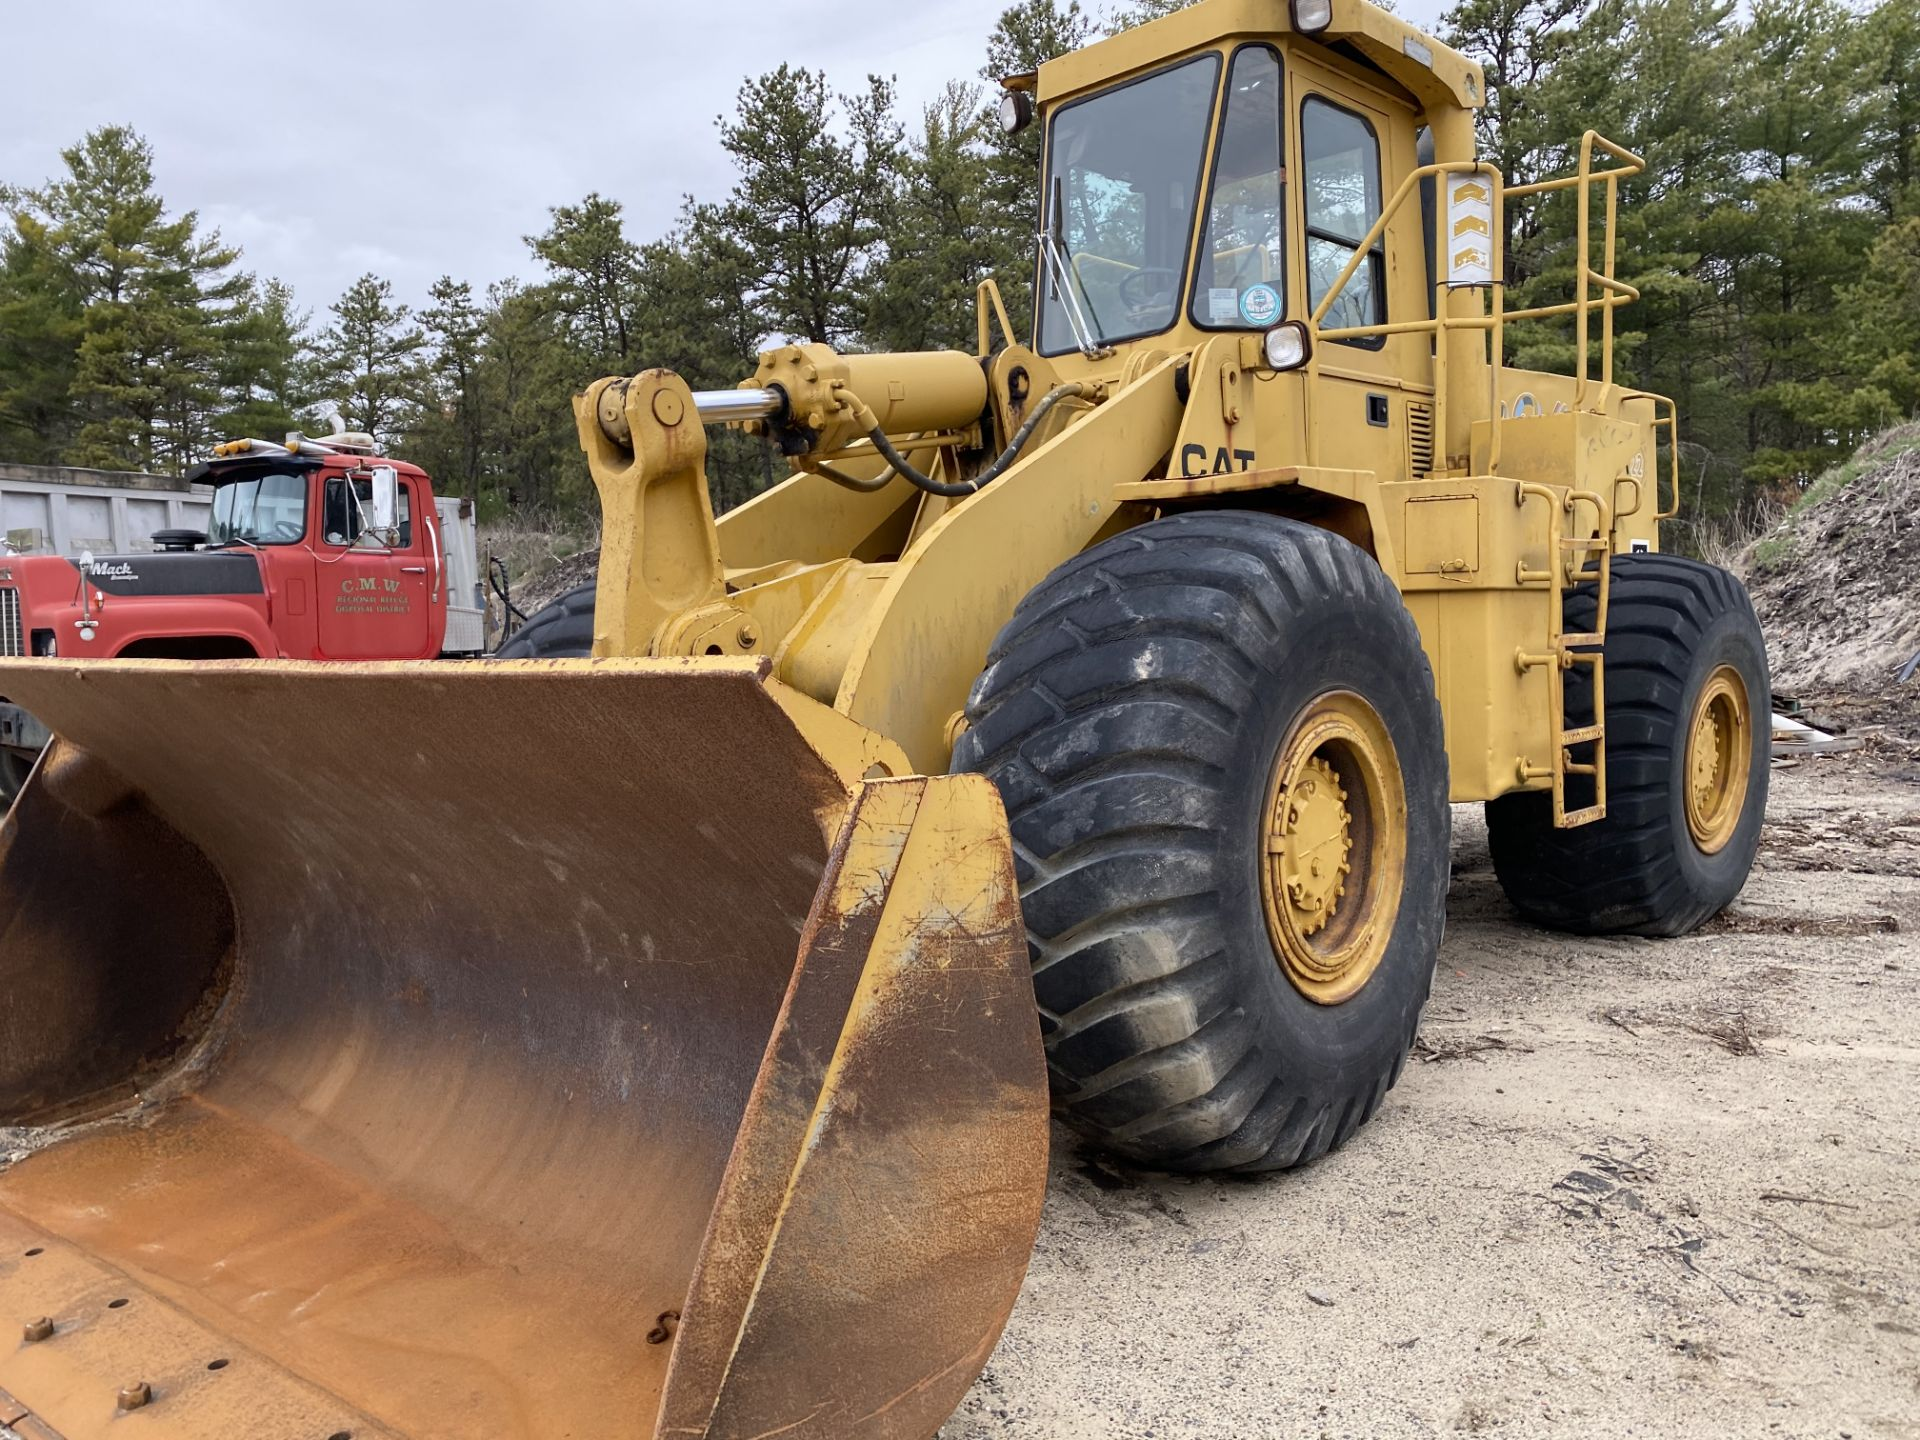 1980 Caterpillar 966D Wheel Loader s/n 99Y02108, Meter Reads 4,664 Hours, Have Title - Image 2 of 23